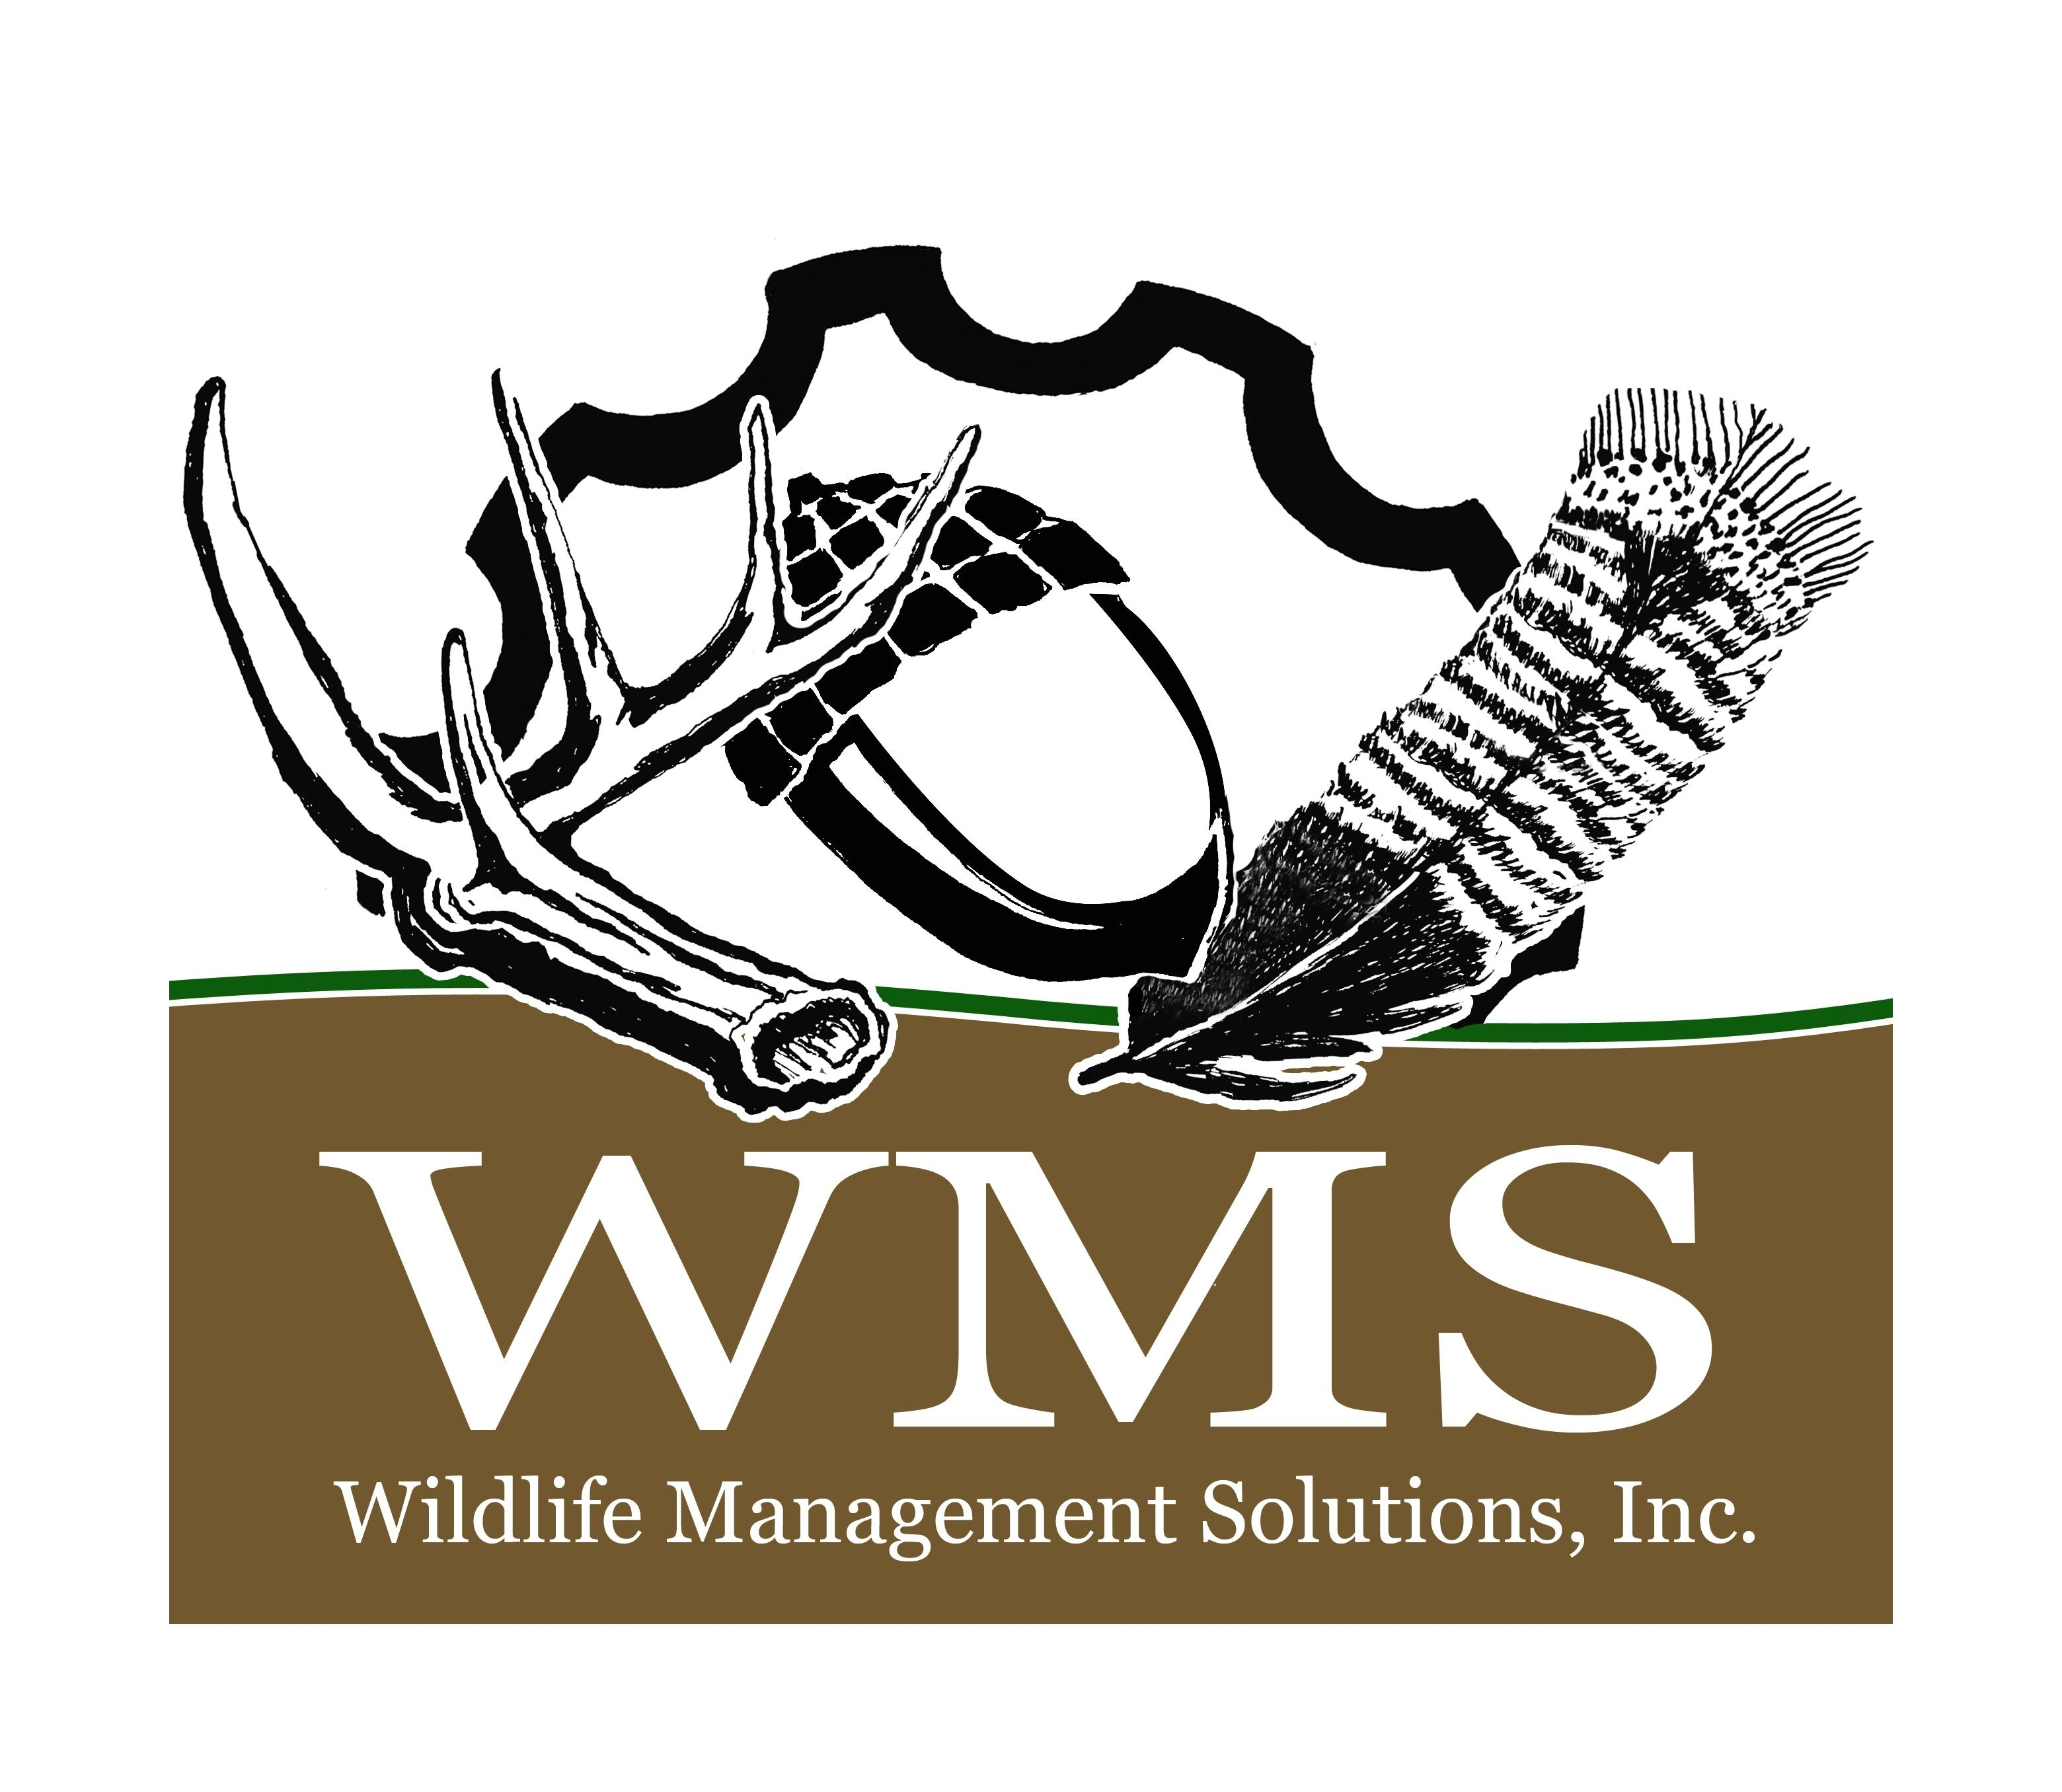 Wildlife Managemant Soultions, Inc.